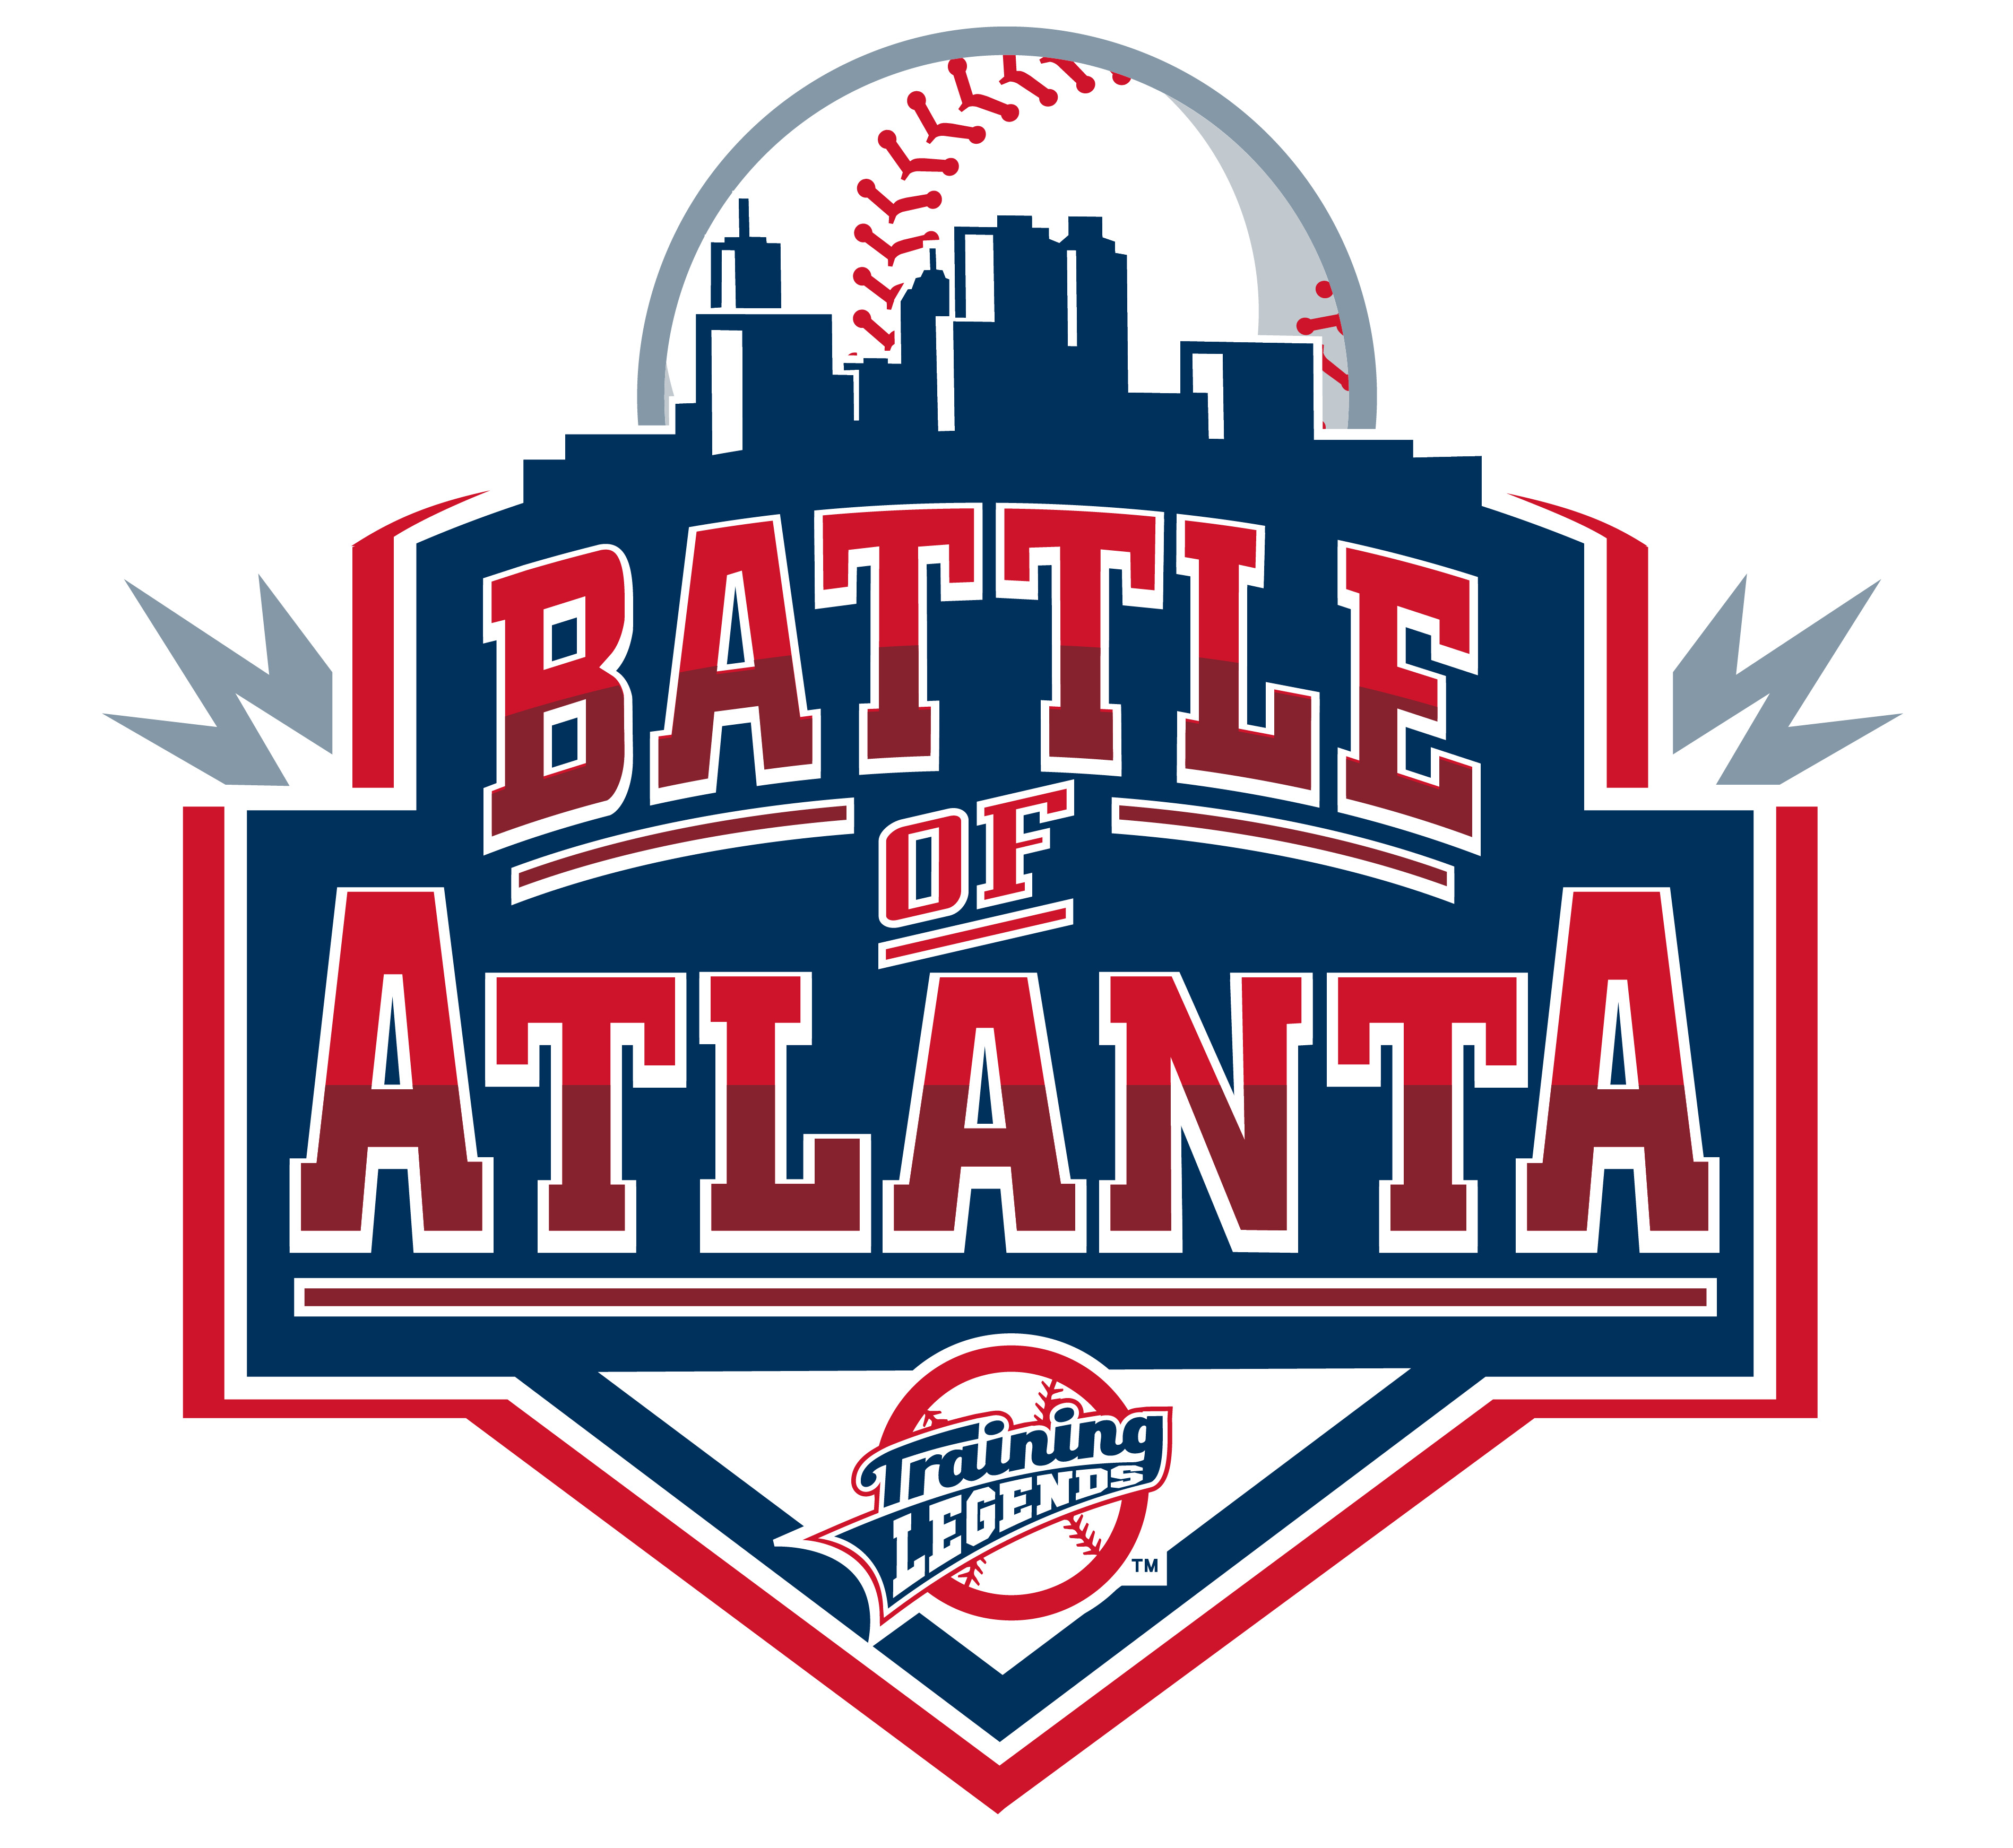 Battle of Atlanta (Travel)